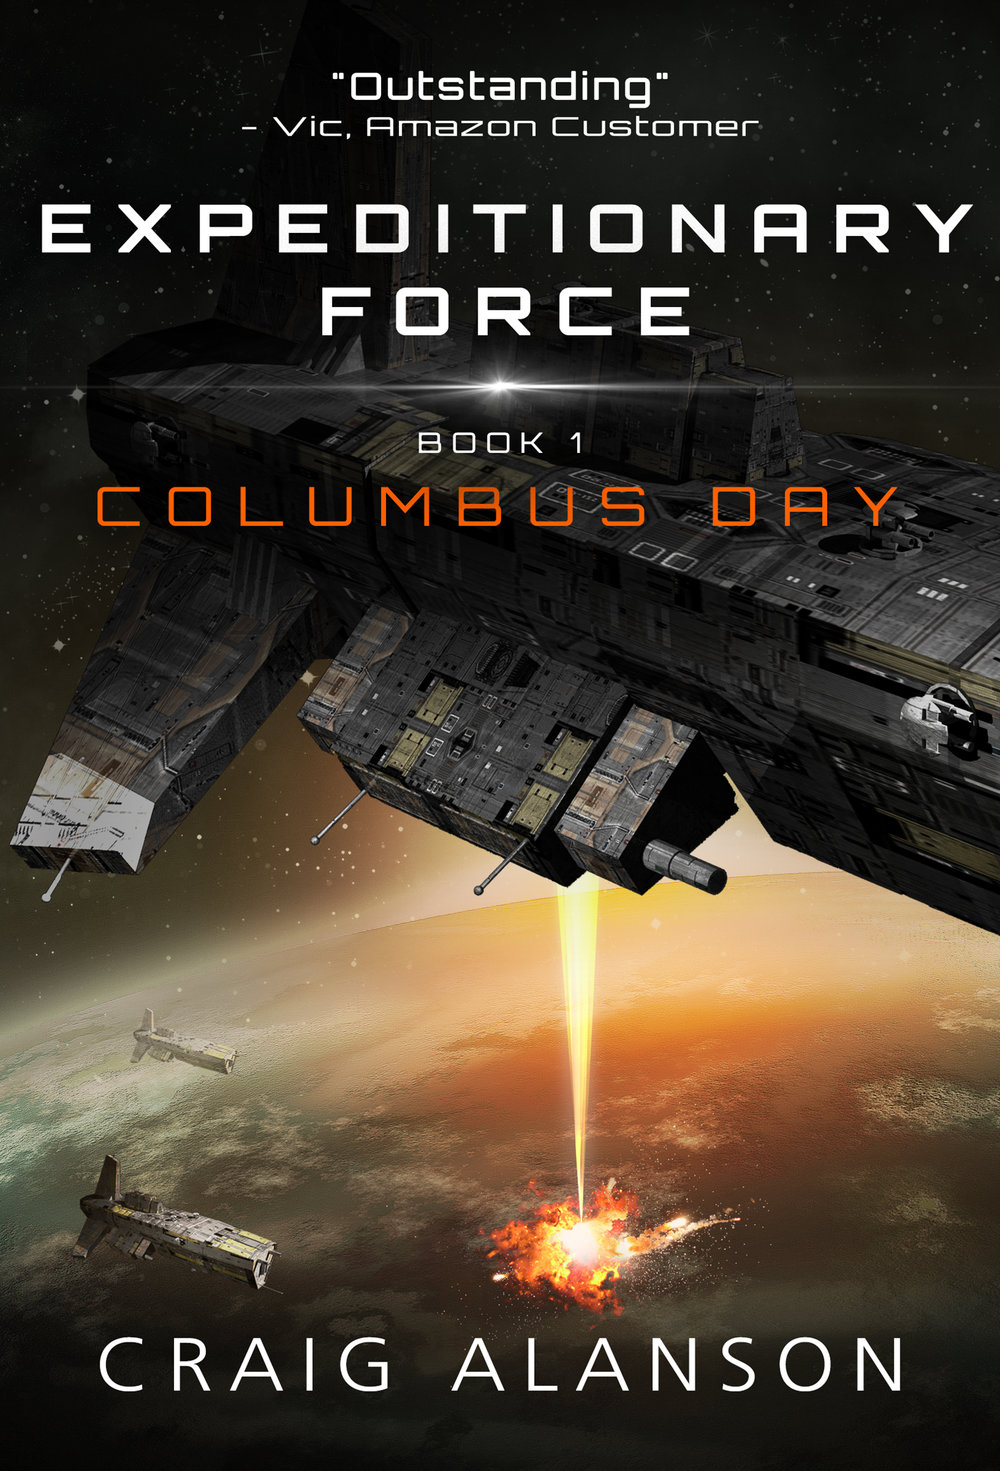 expeditionary force craig alanson book 7